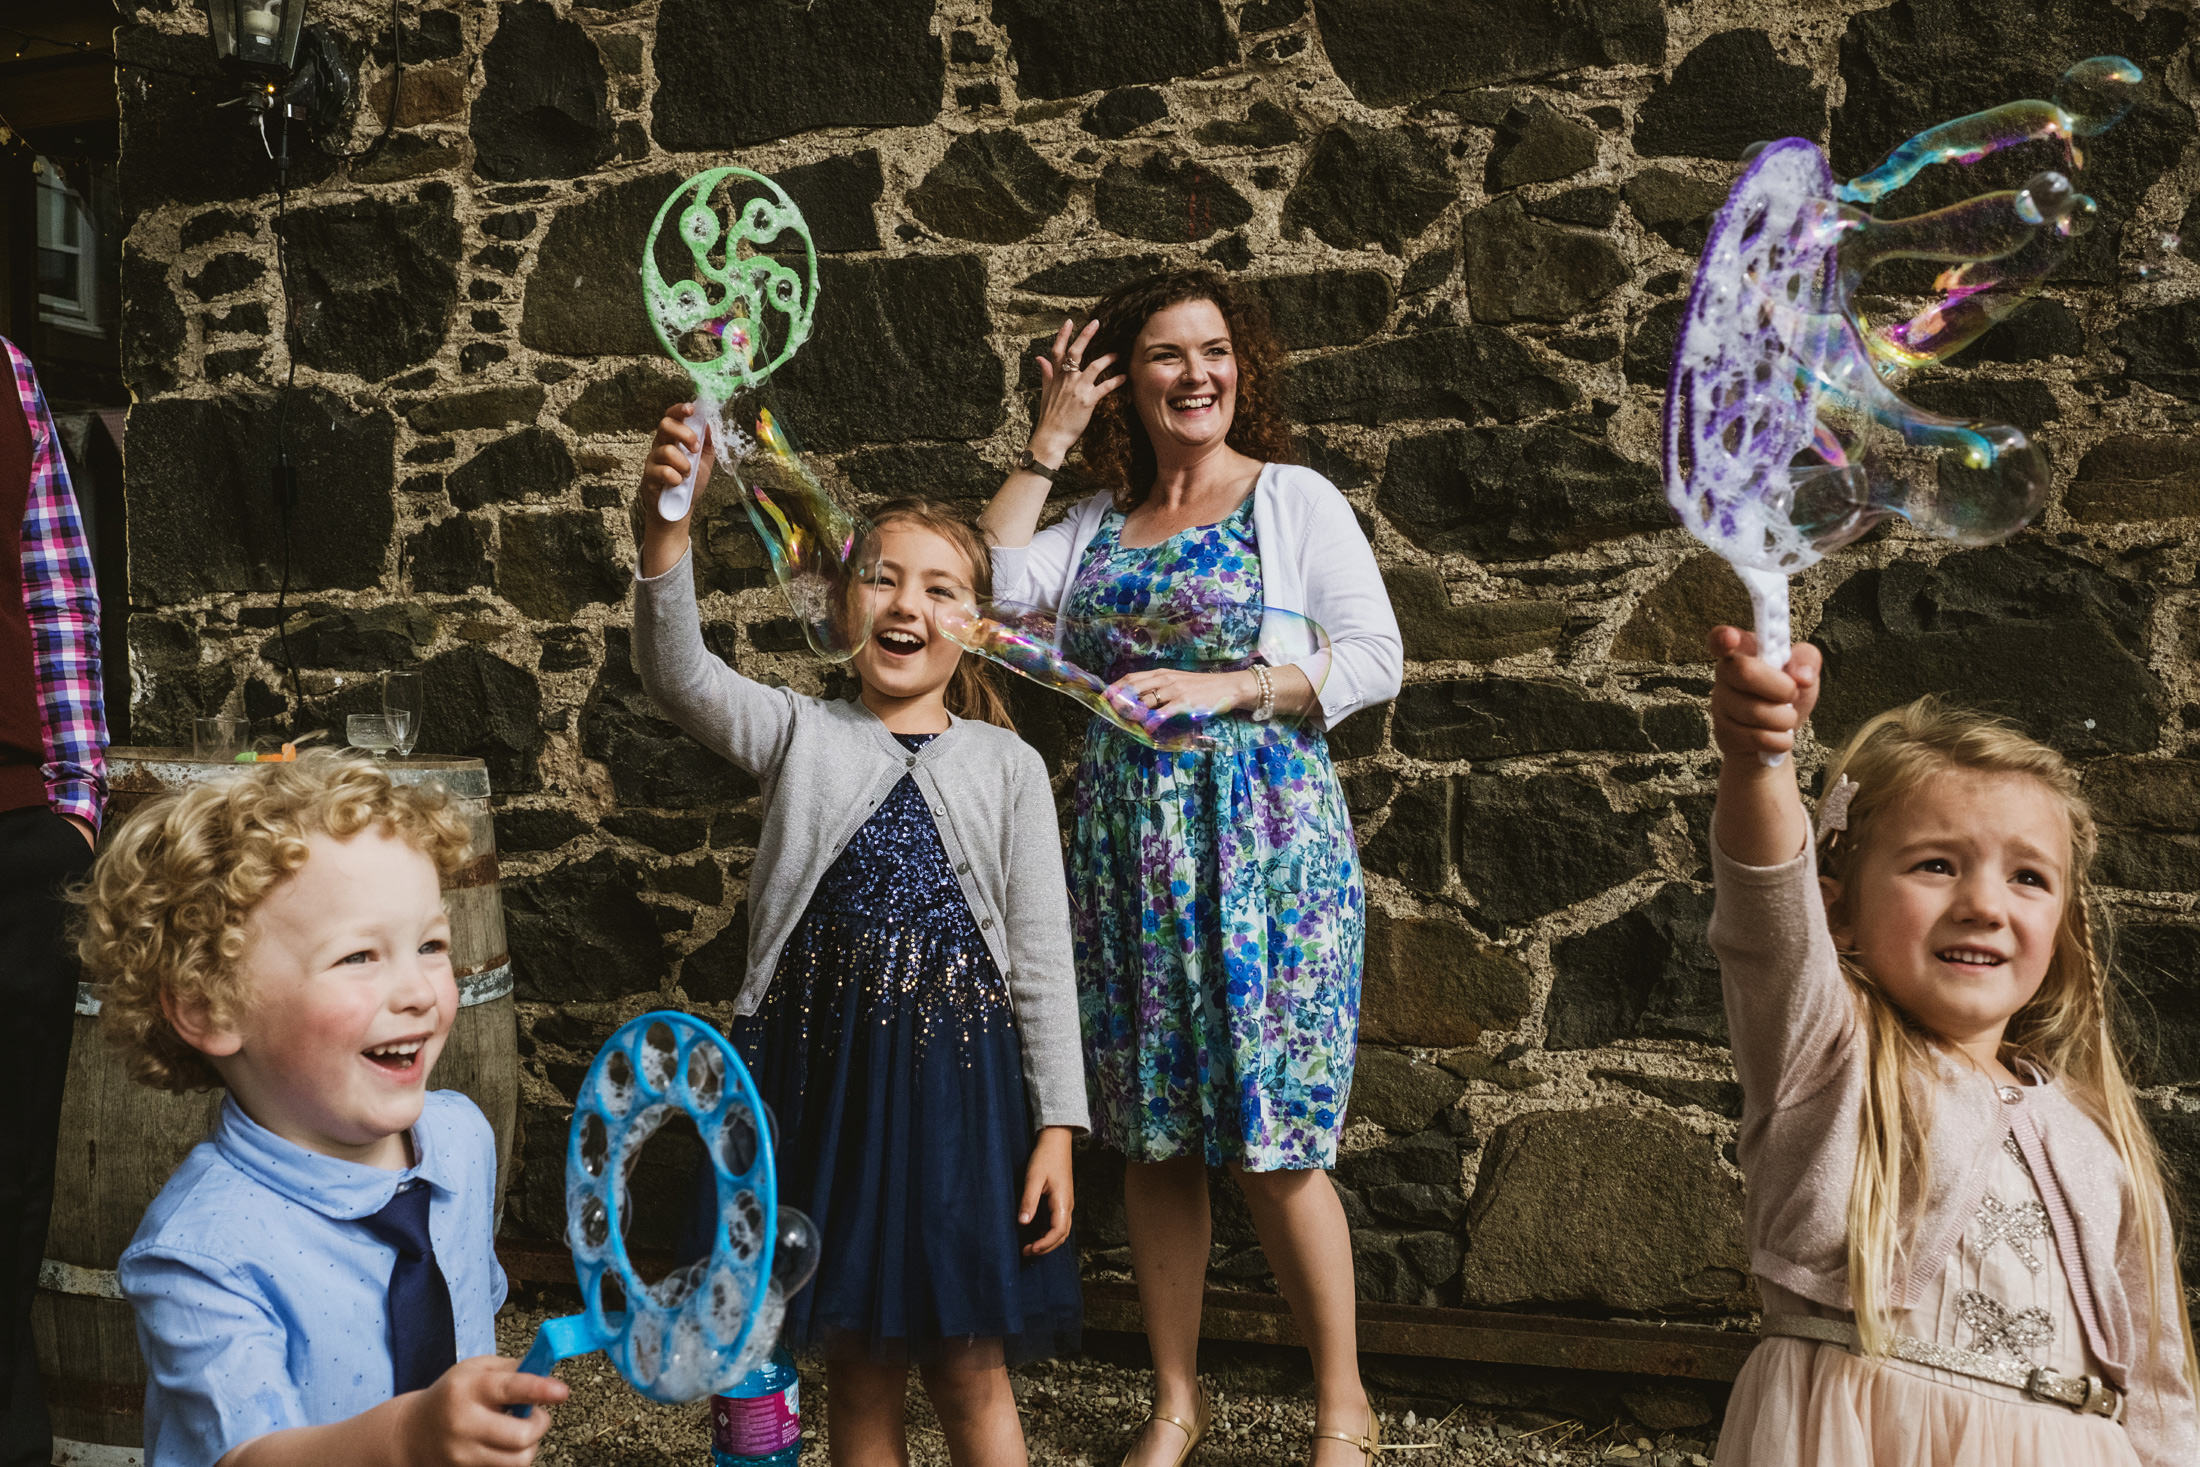 Wedding guests, old and young alike playing with bubbles